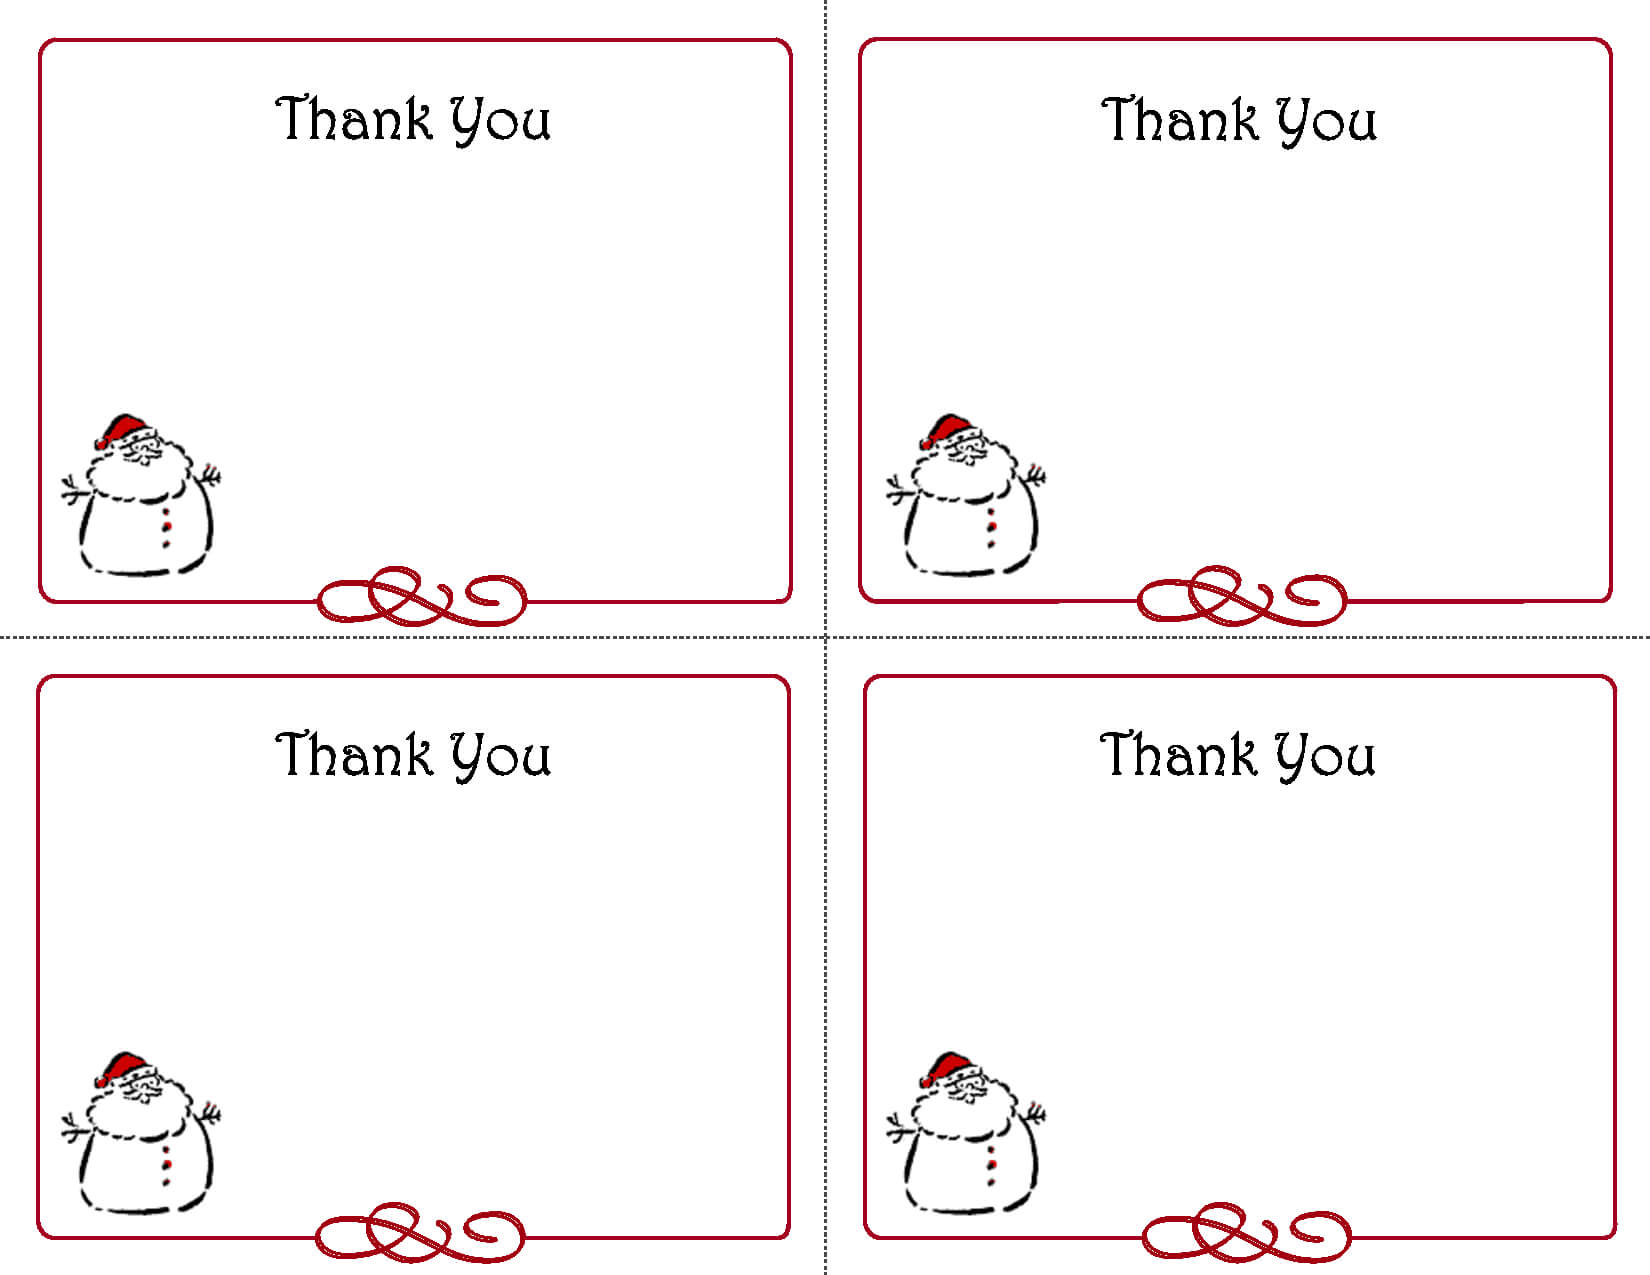 Free Thank You Cards Printable | Free Printable Holiday Gift Within Christmas Thank You Card Templates Free